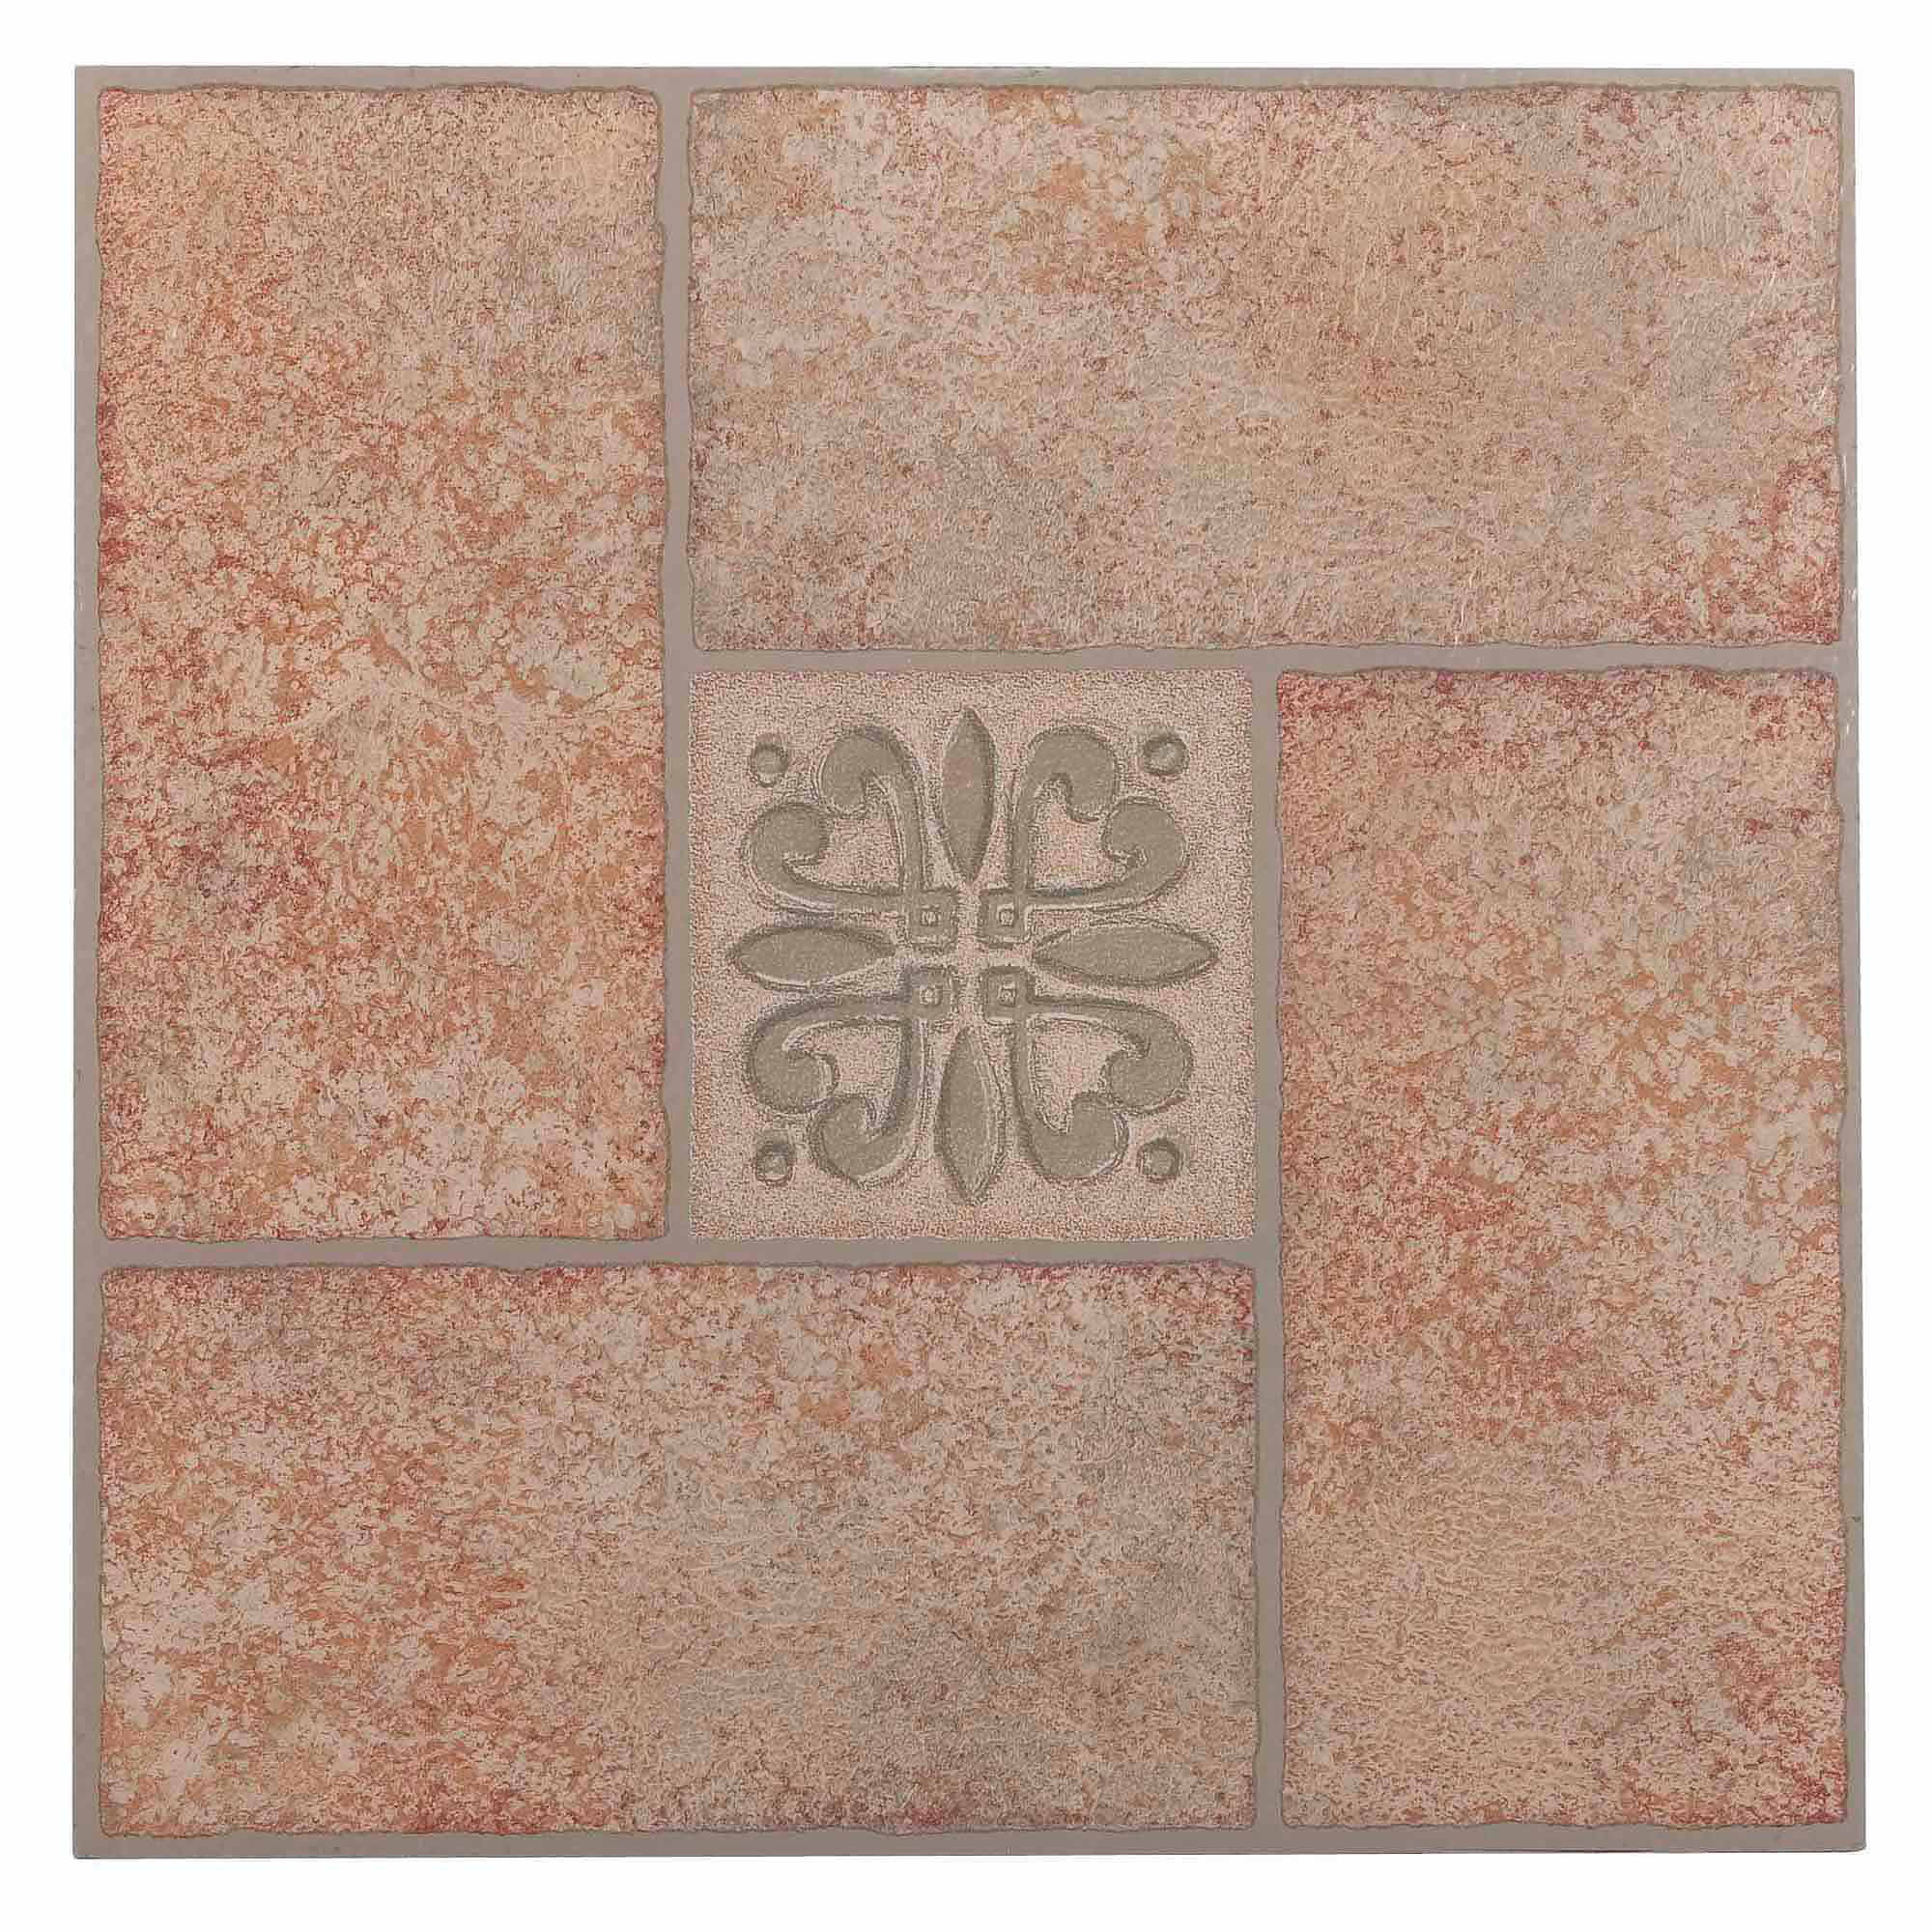 Vinyl flooring walmart nexus beige terracotta motif center 12x12 self adhesive vinyl floor tile 20 tiles20 dailygadgetfo Images